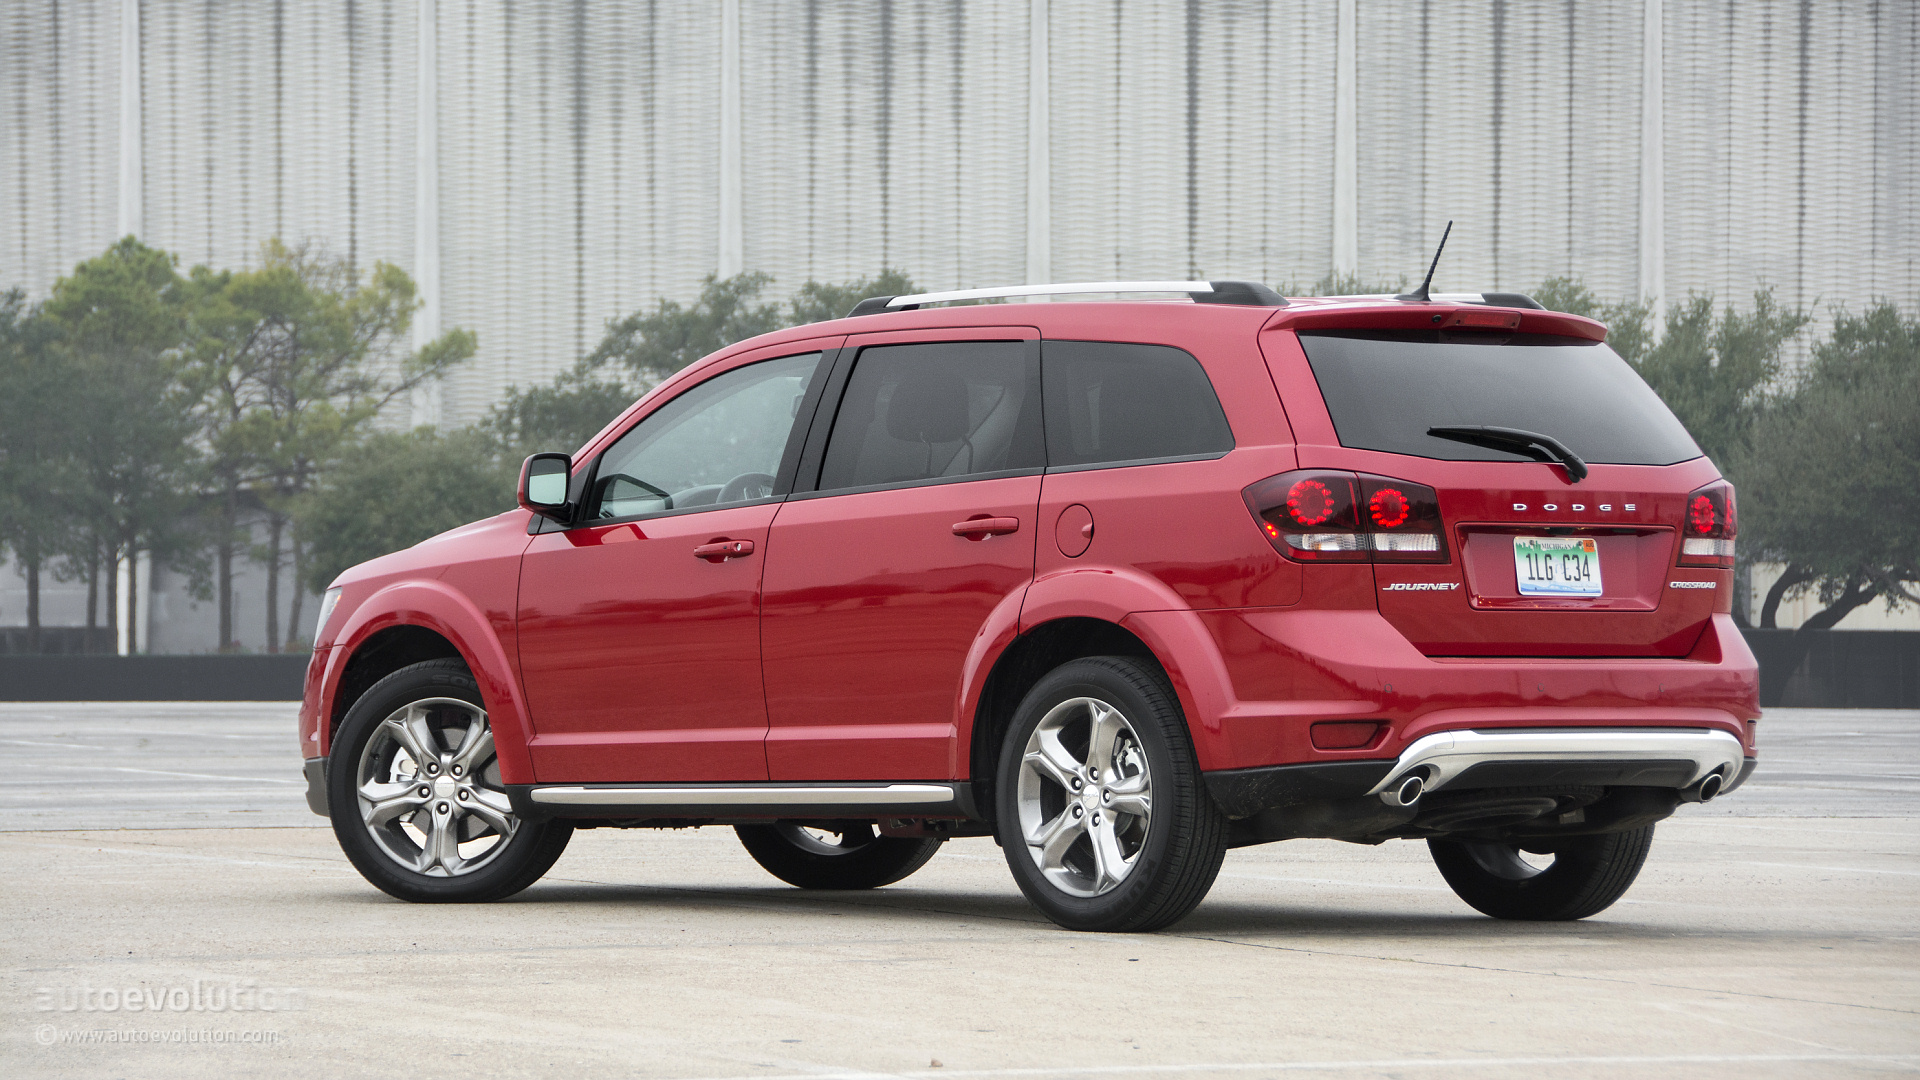 Dodge Journey Crossroad >> 2015 Dodge Journey Crossroad HD Wallpapers: the Budget Family Man - autoevolution